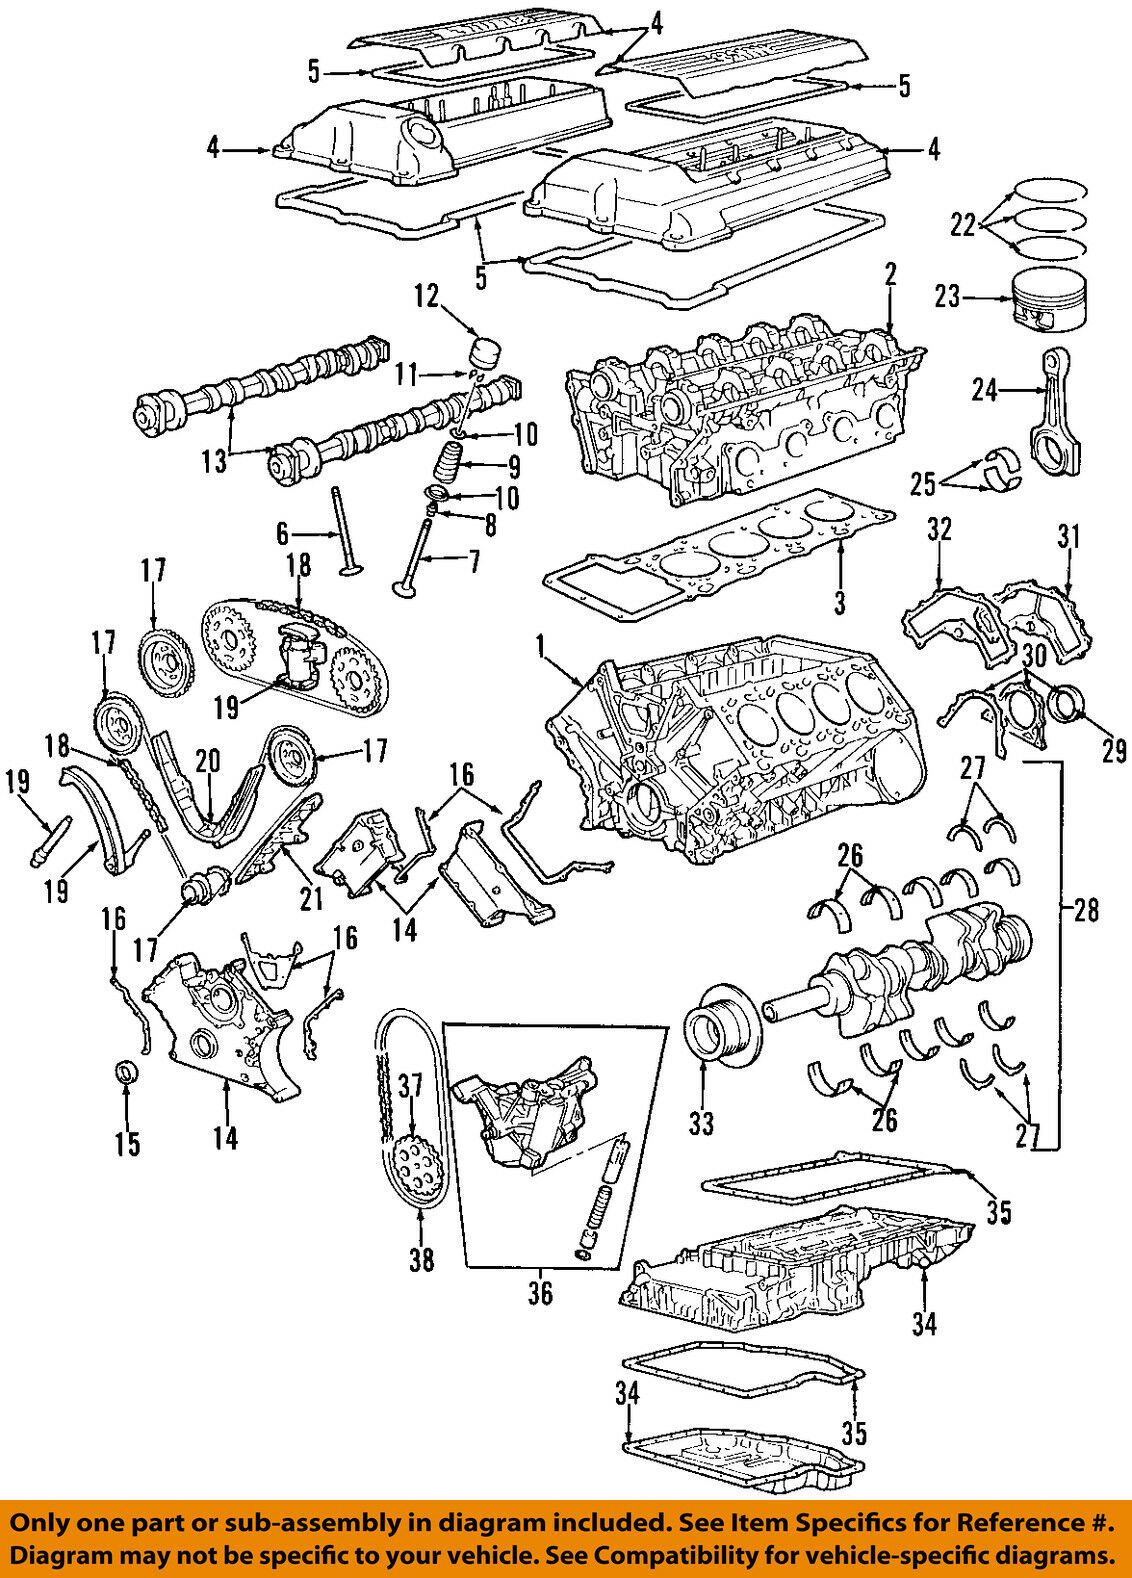 Bmw Oem 00 03 X5 Engine Timing Chain Guide 11311745406 5717 Diagram 1 Of 1only Available